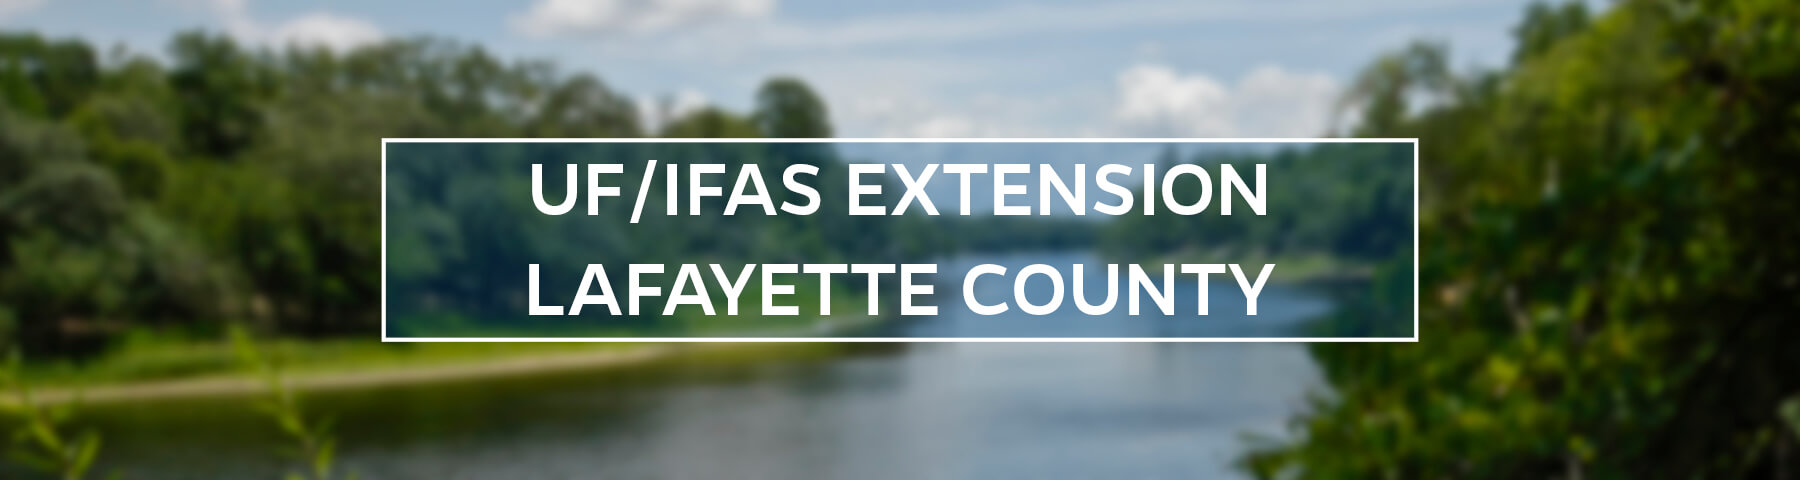 UF/IFAS Extension Lafayette County